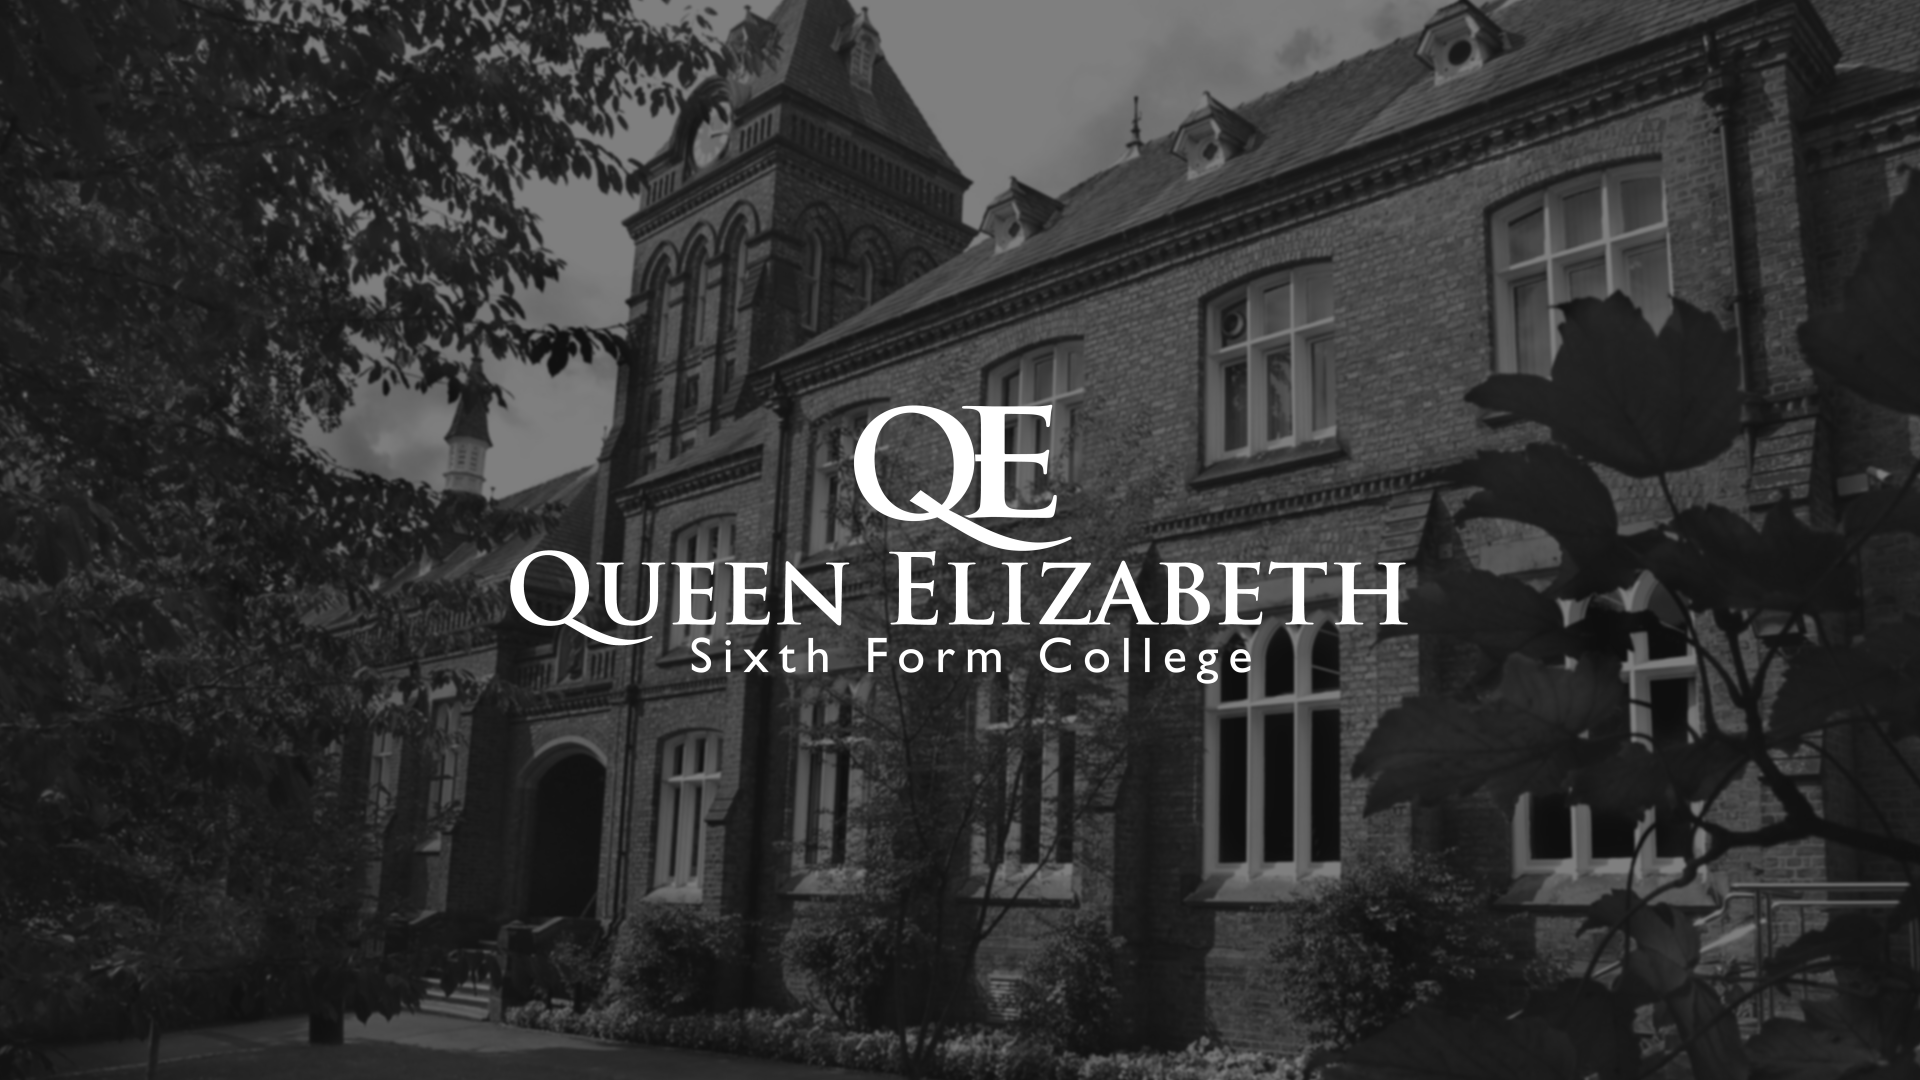 Queen Elizabeth Sixth Form College